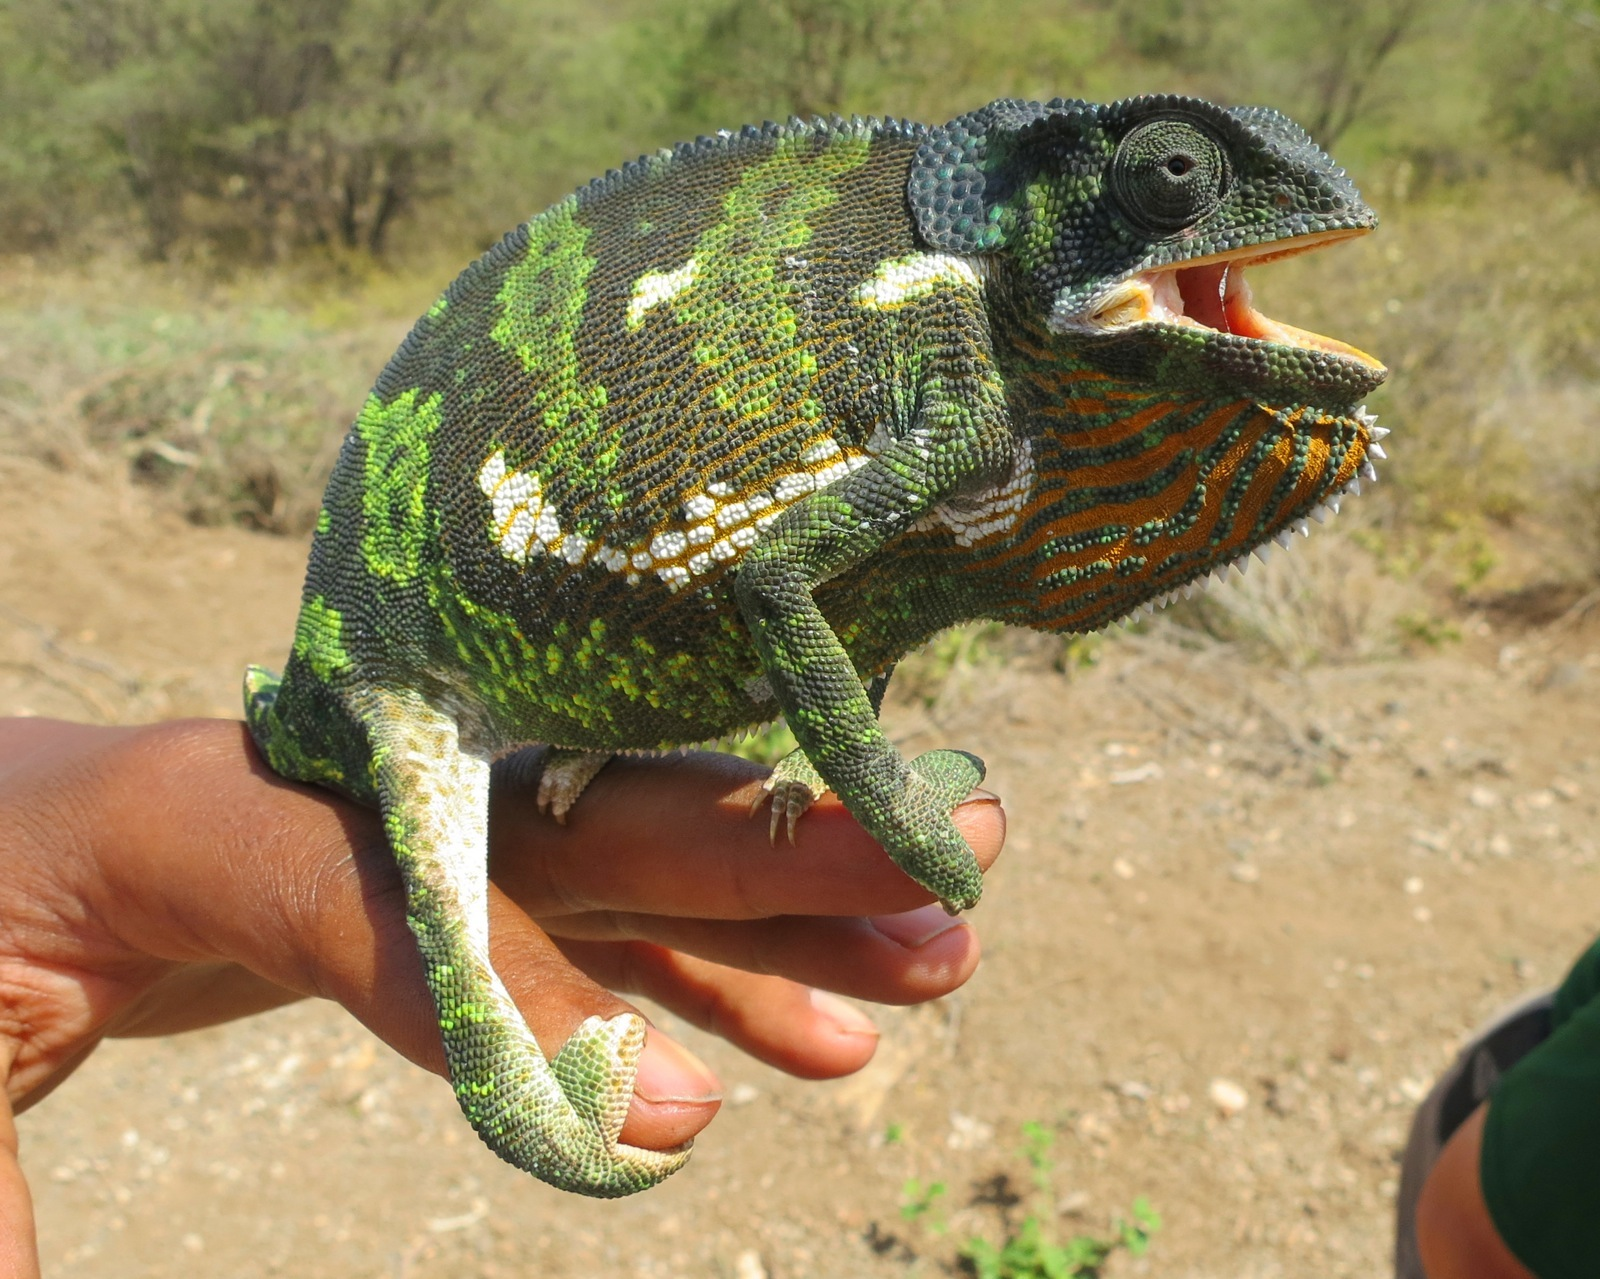 Close-up of a chameleon with mouth agape grasping onto guide's hand.